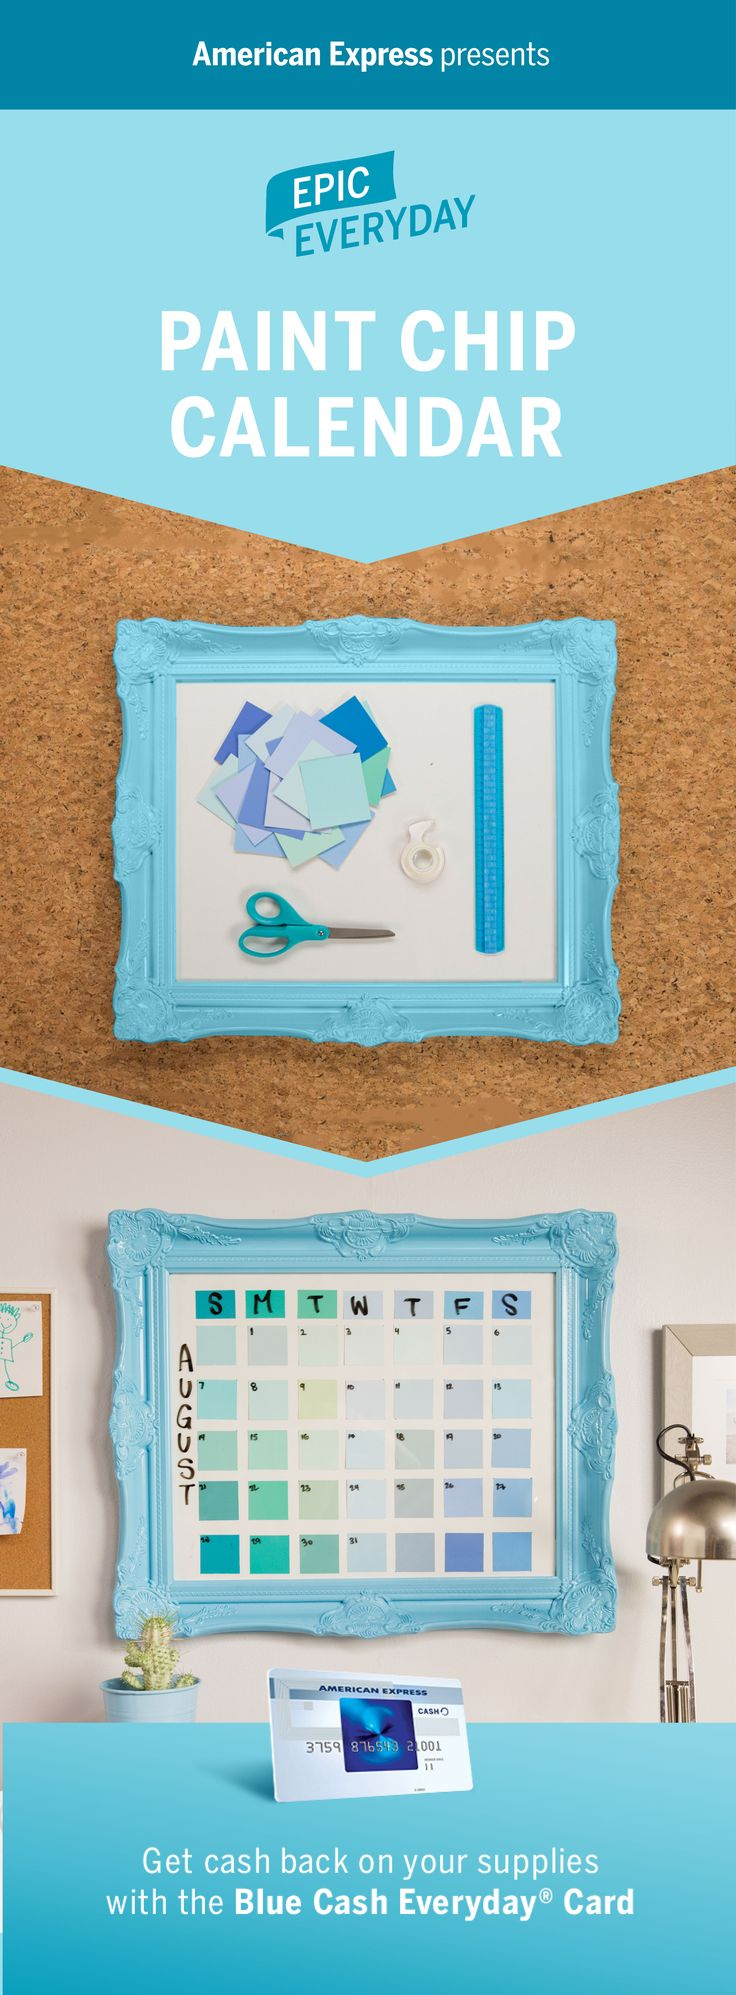 Add some epic color to your office or home with a DIY project. Get creative with paint chips, a large picture frame and dry erase markers. You can turn your monthly planner into a wall art idea you'll love! // Presented with American Express